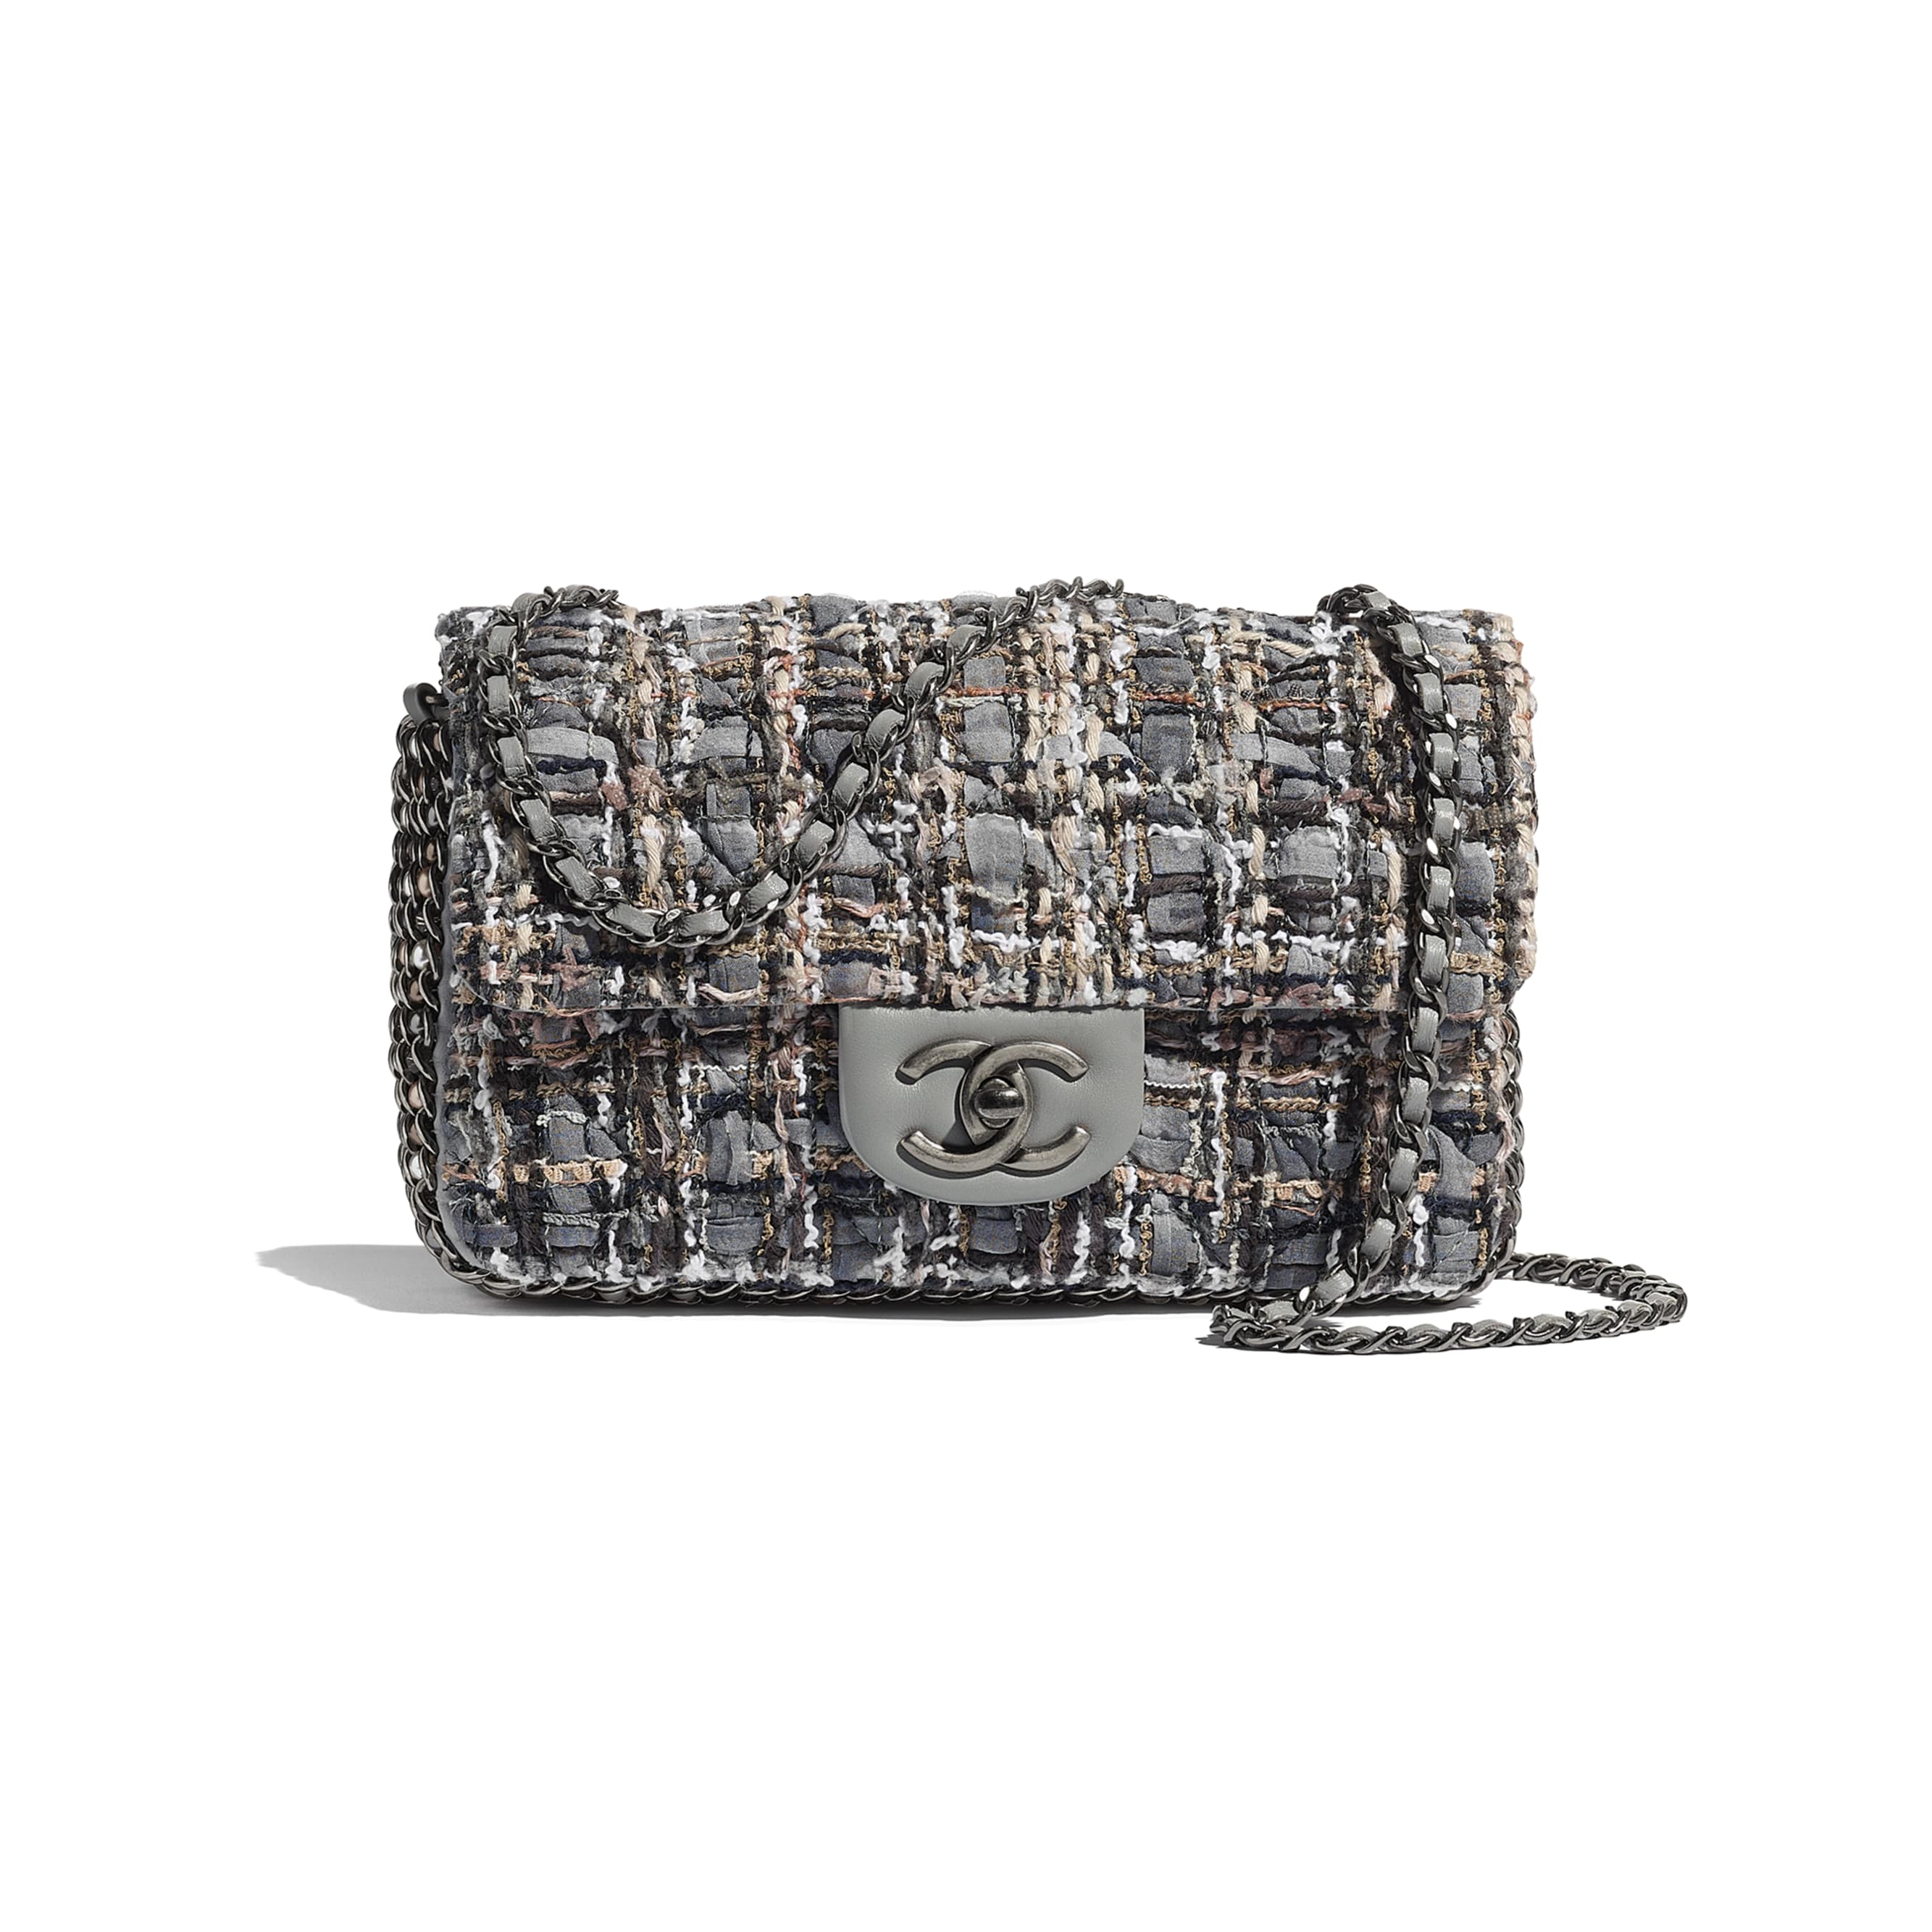 Flap Bag - Grey, Beige, Brown & White - Tweed, Imitation Pearls & Ruthenium-Finish Metal - CHANEL - Default view - see standard sized version